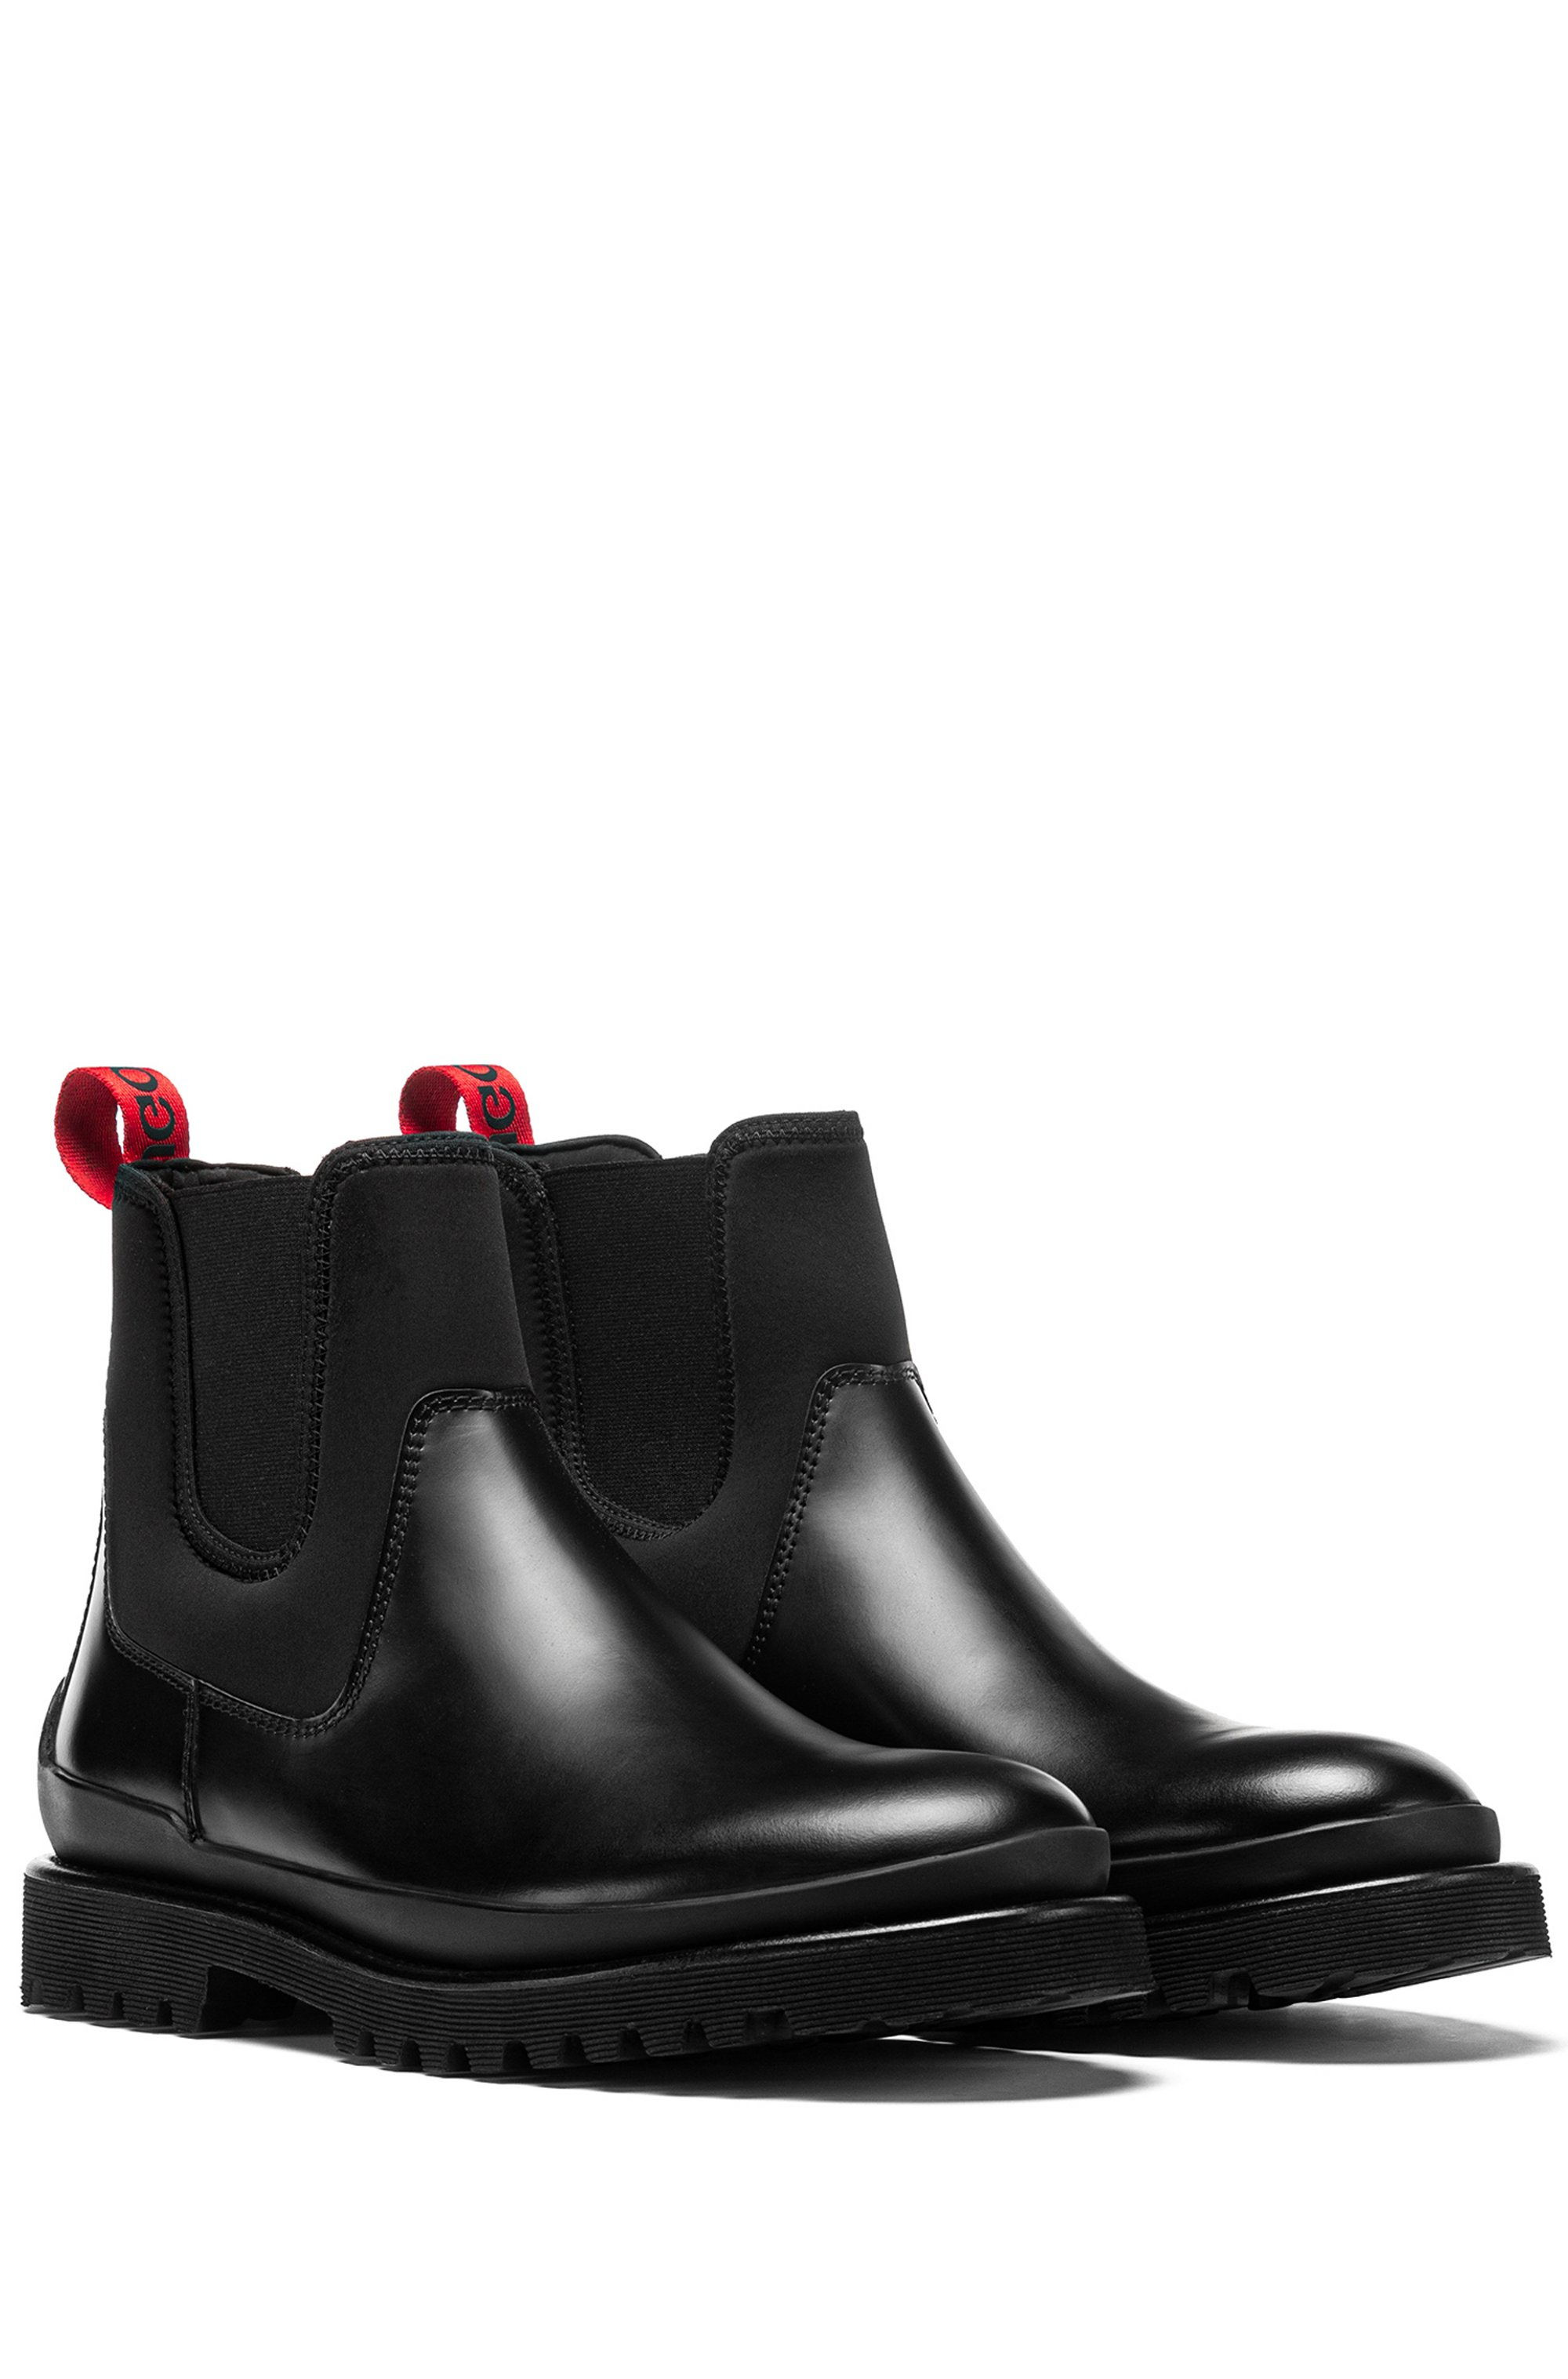 Chelsea boots in brush-off leather and stretch fabric